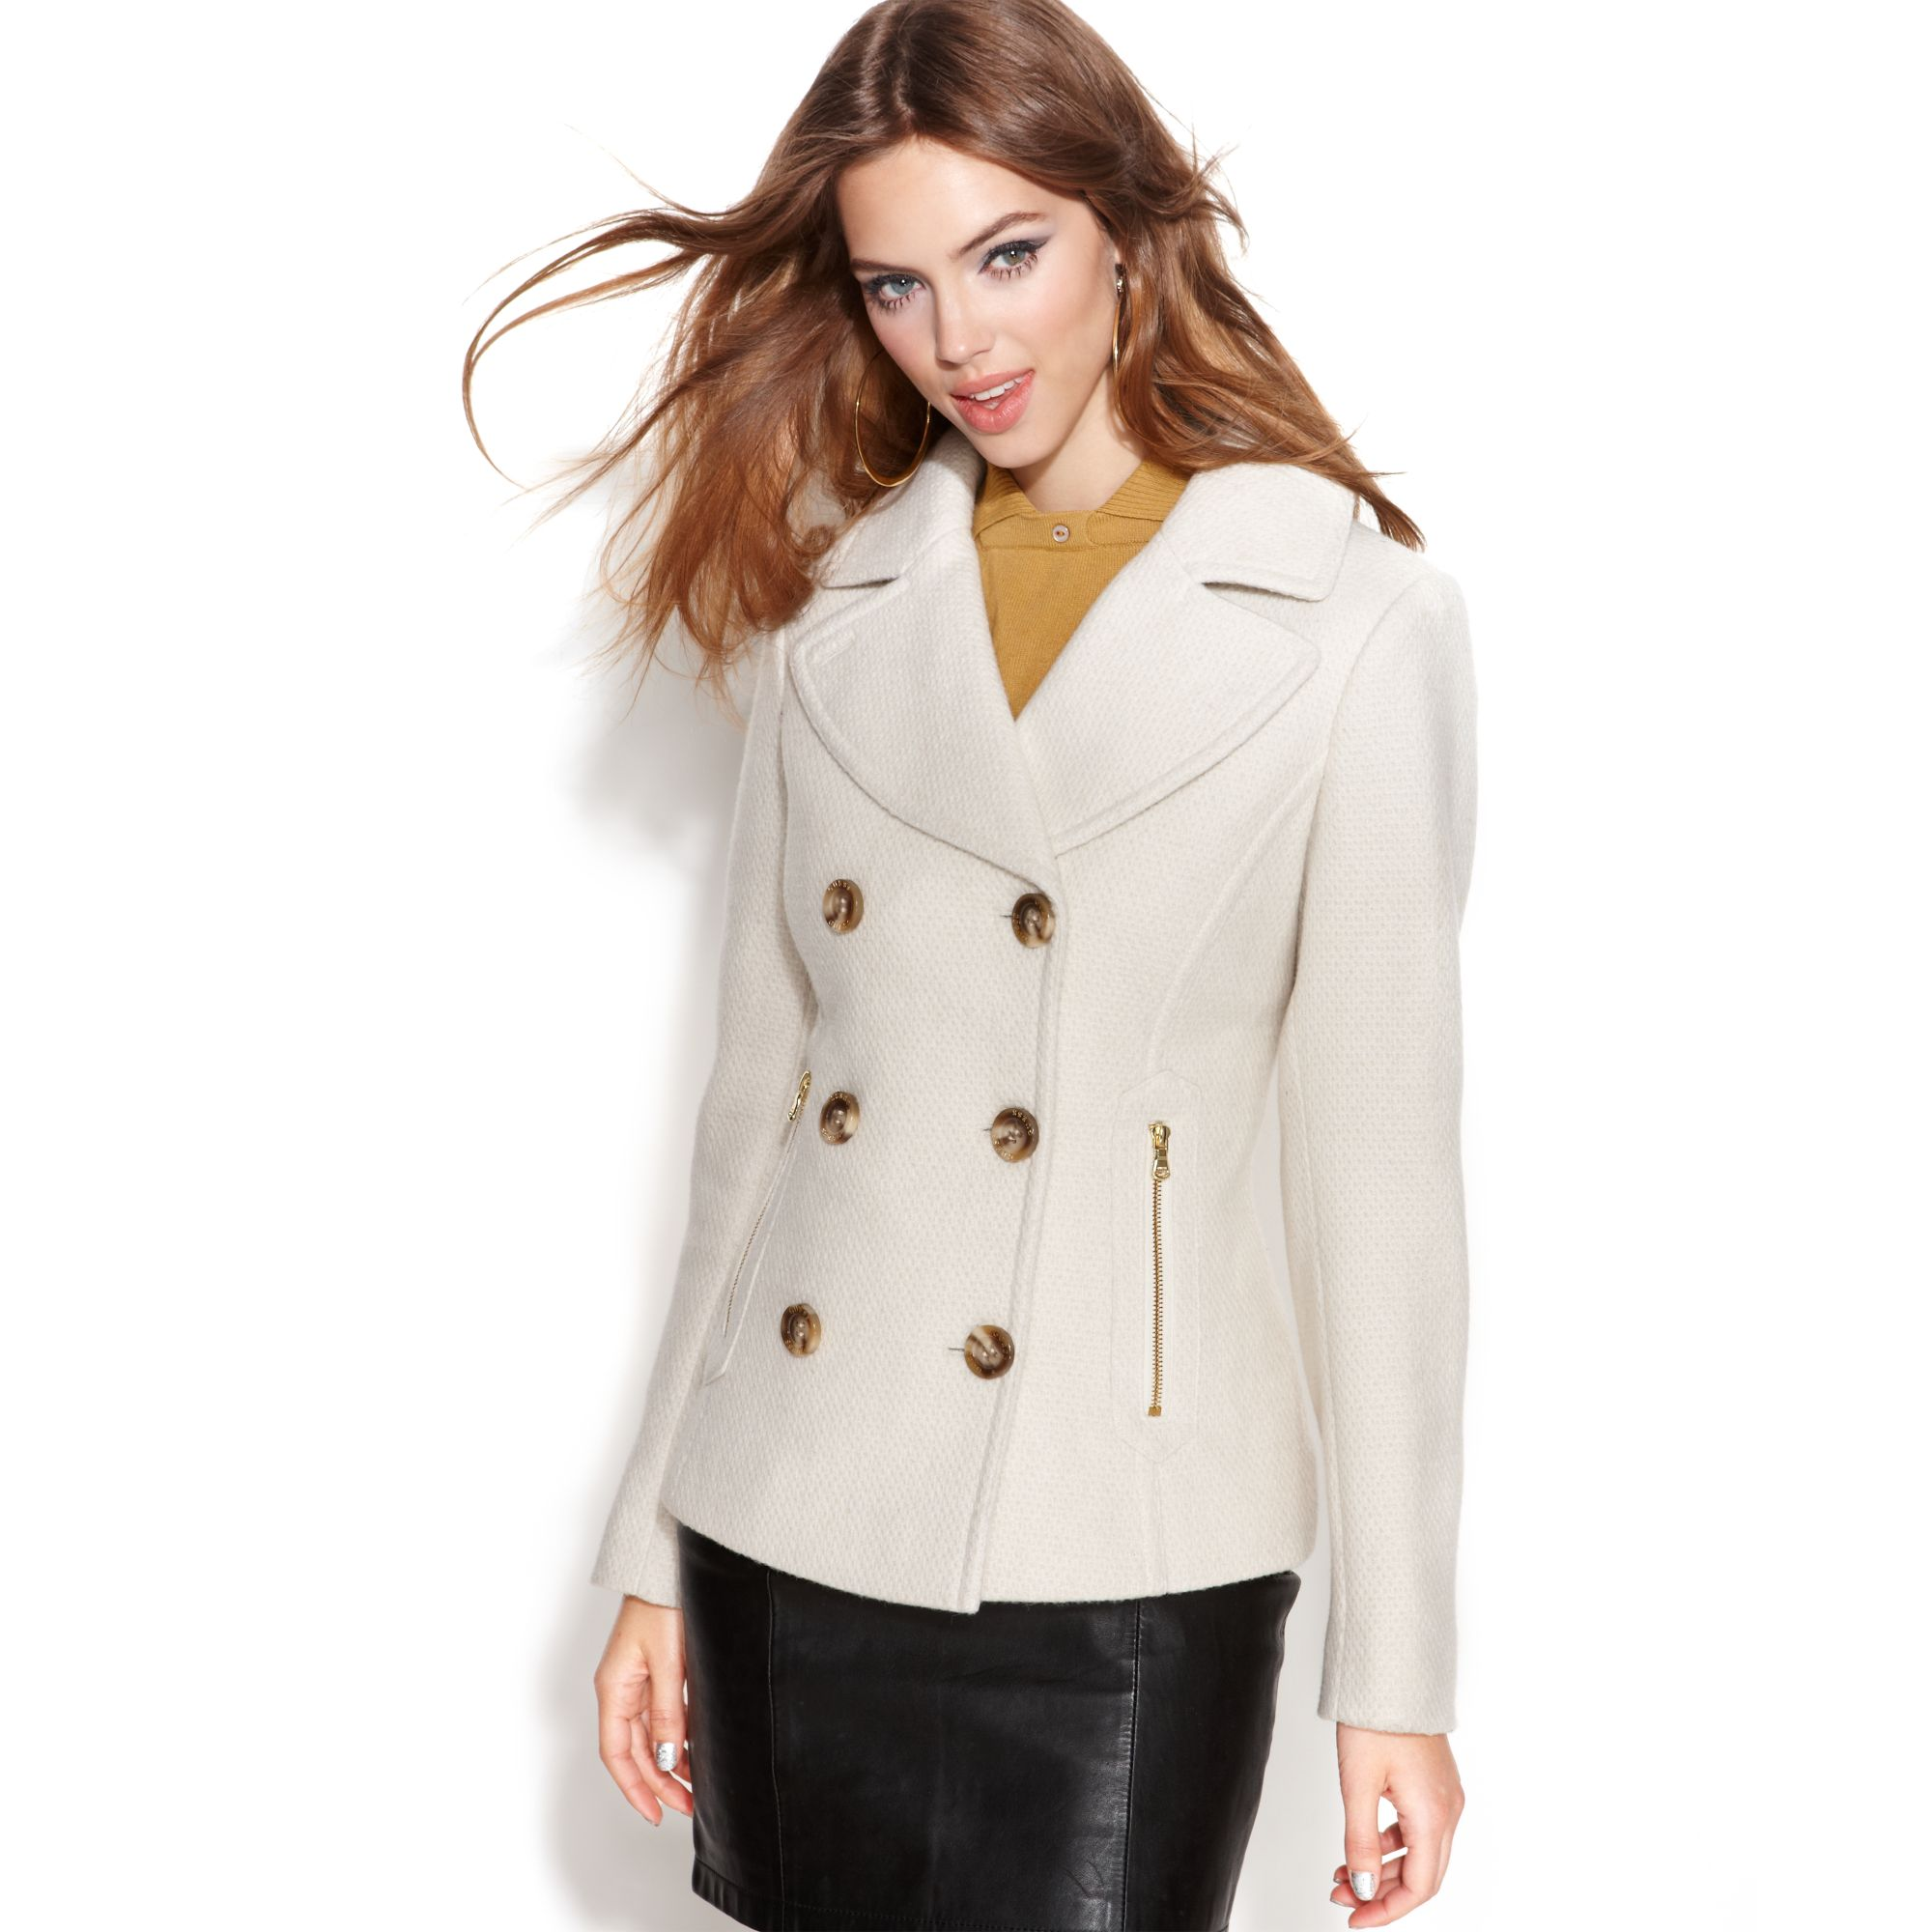 Free shipping and returns on women's peacoats at gothicphotos.ga Shop top brands like Calvin Klein, Burberry Brit and more, plus check out customer reviews.